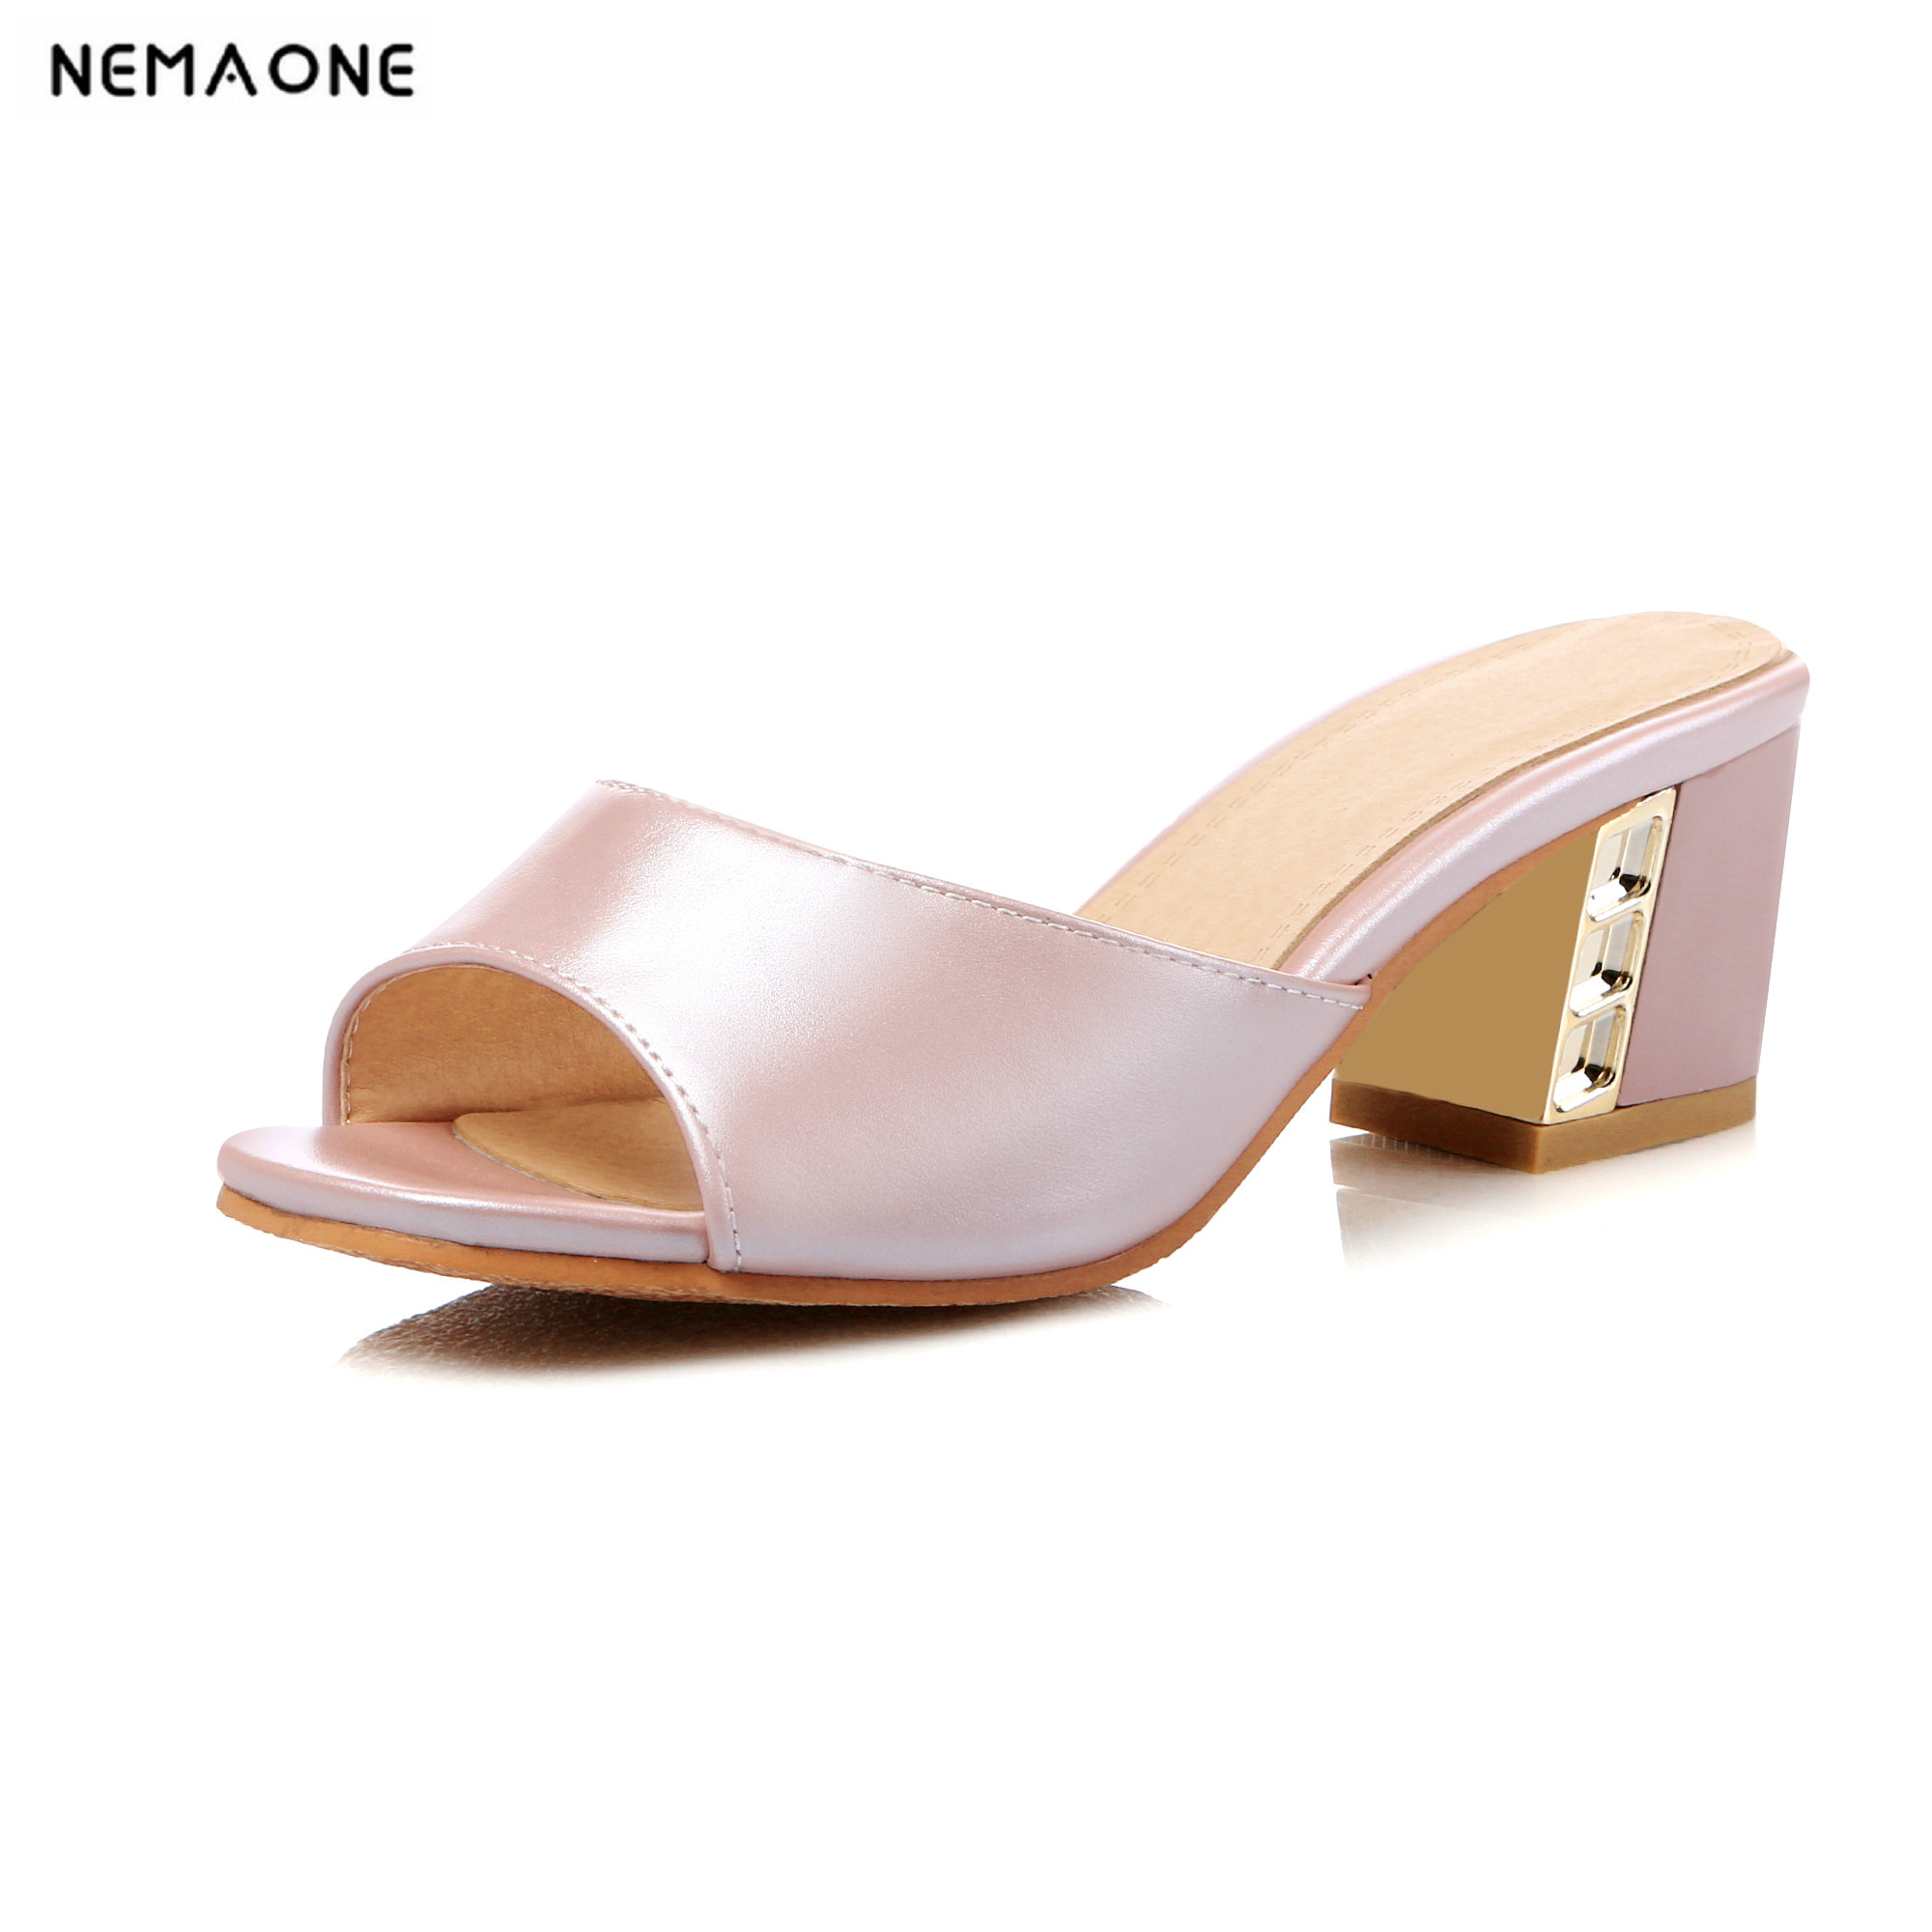 NEMAONE 2018 Summer Square Medium Heel Slippers Fashion Luxury Sandals pu Slides Causal Flip flops Beach Shoes Woman selens pro 100x100mm 12nd square medium